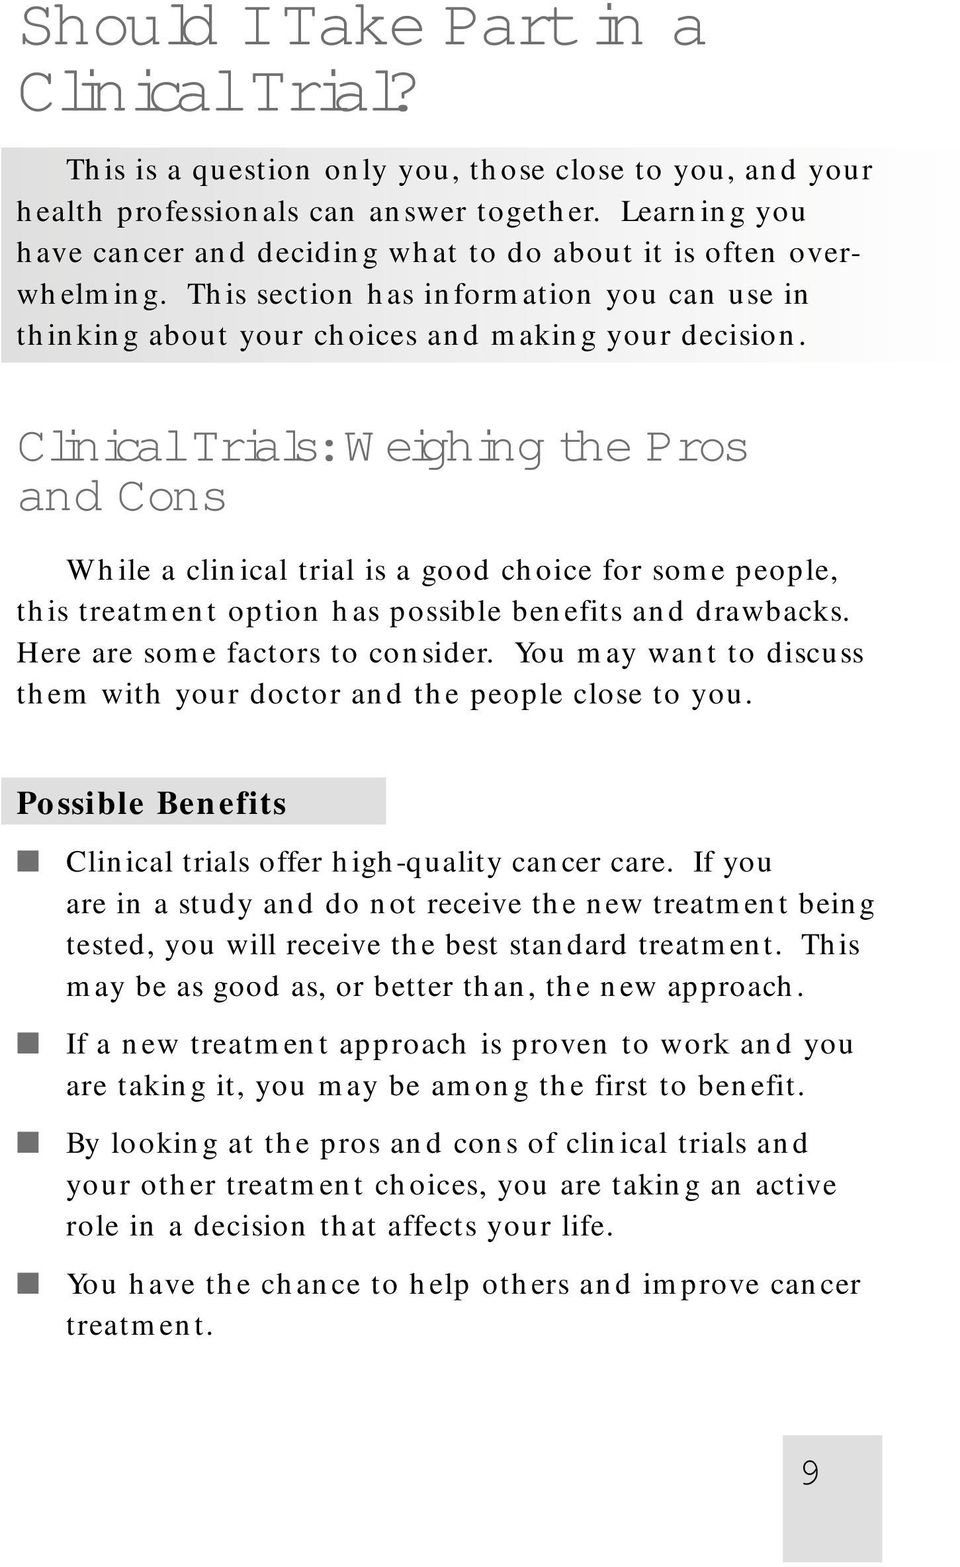 Clinical Trials: Weighing the Pros and Cons While a clinical trial is a good choice for some people, this treatment option has possible benefits and drawbacks. Here are some factors to consider.